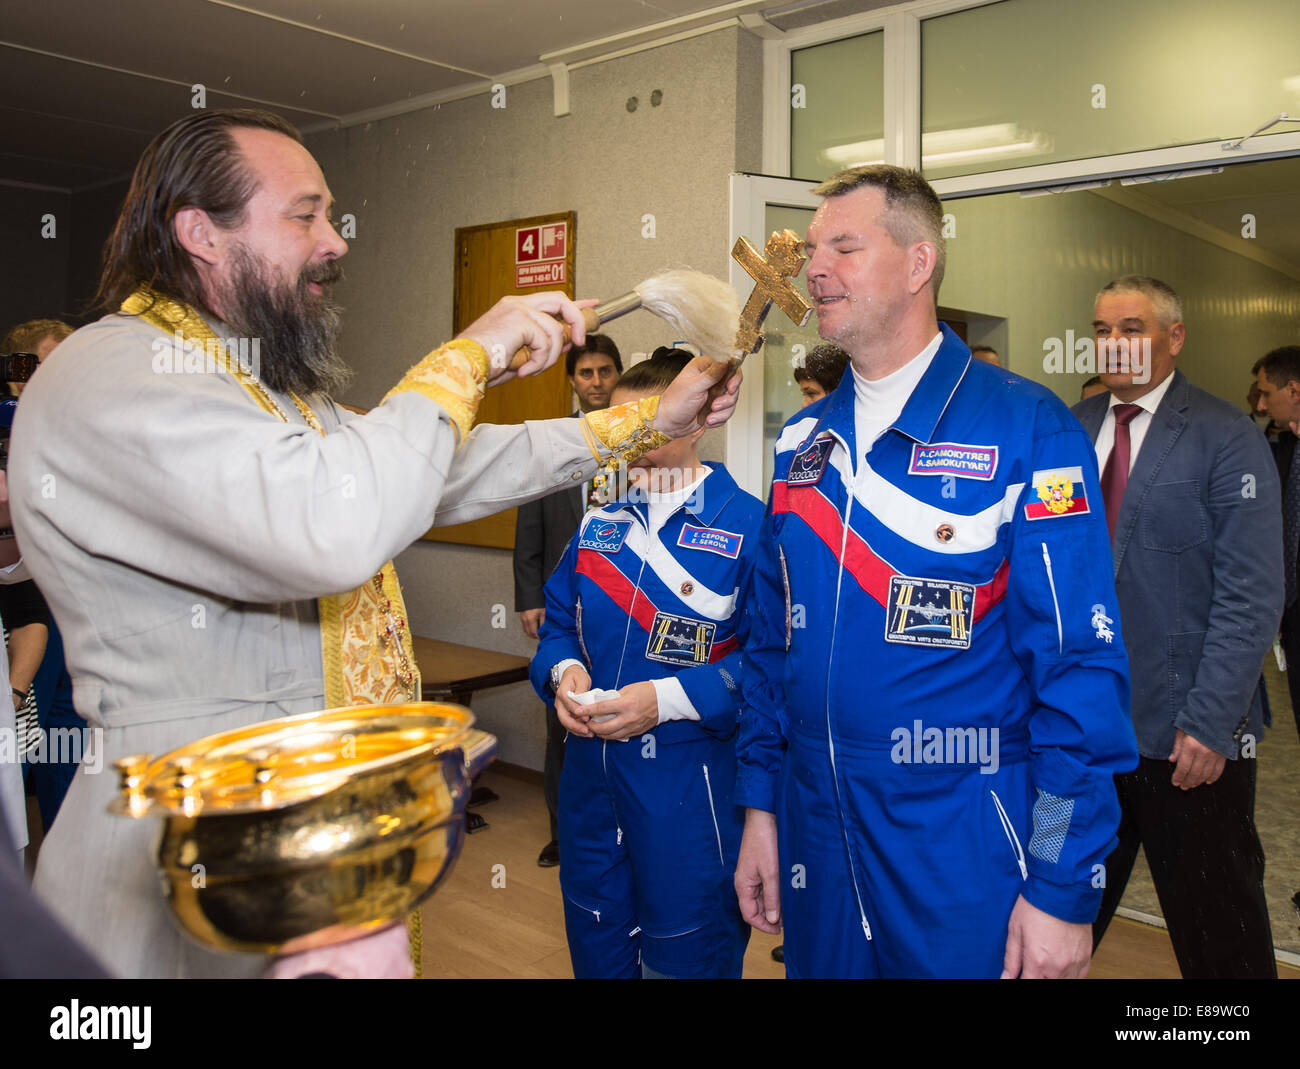 Expedition 41 Soyuz Commander Alexander Samokutyaev of the Russian Federal Space Agency (Roscosmos), right, receives - Stock Image